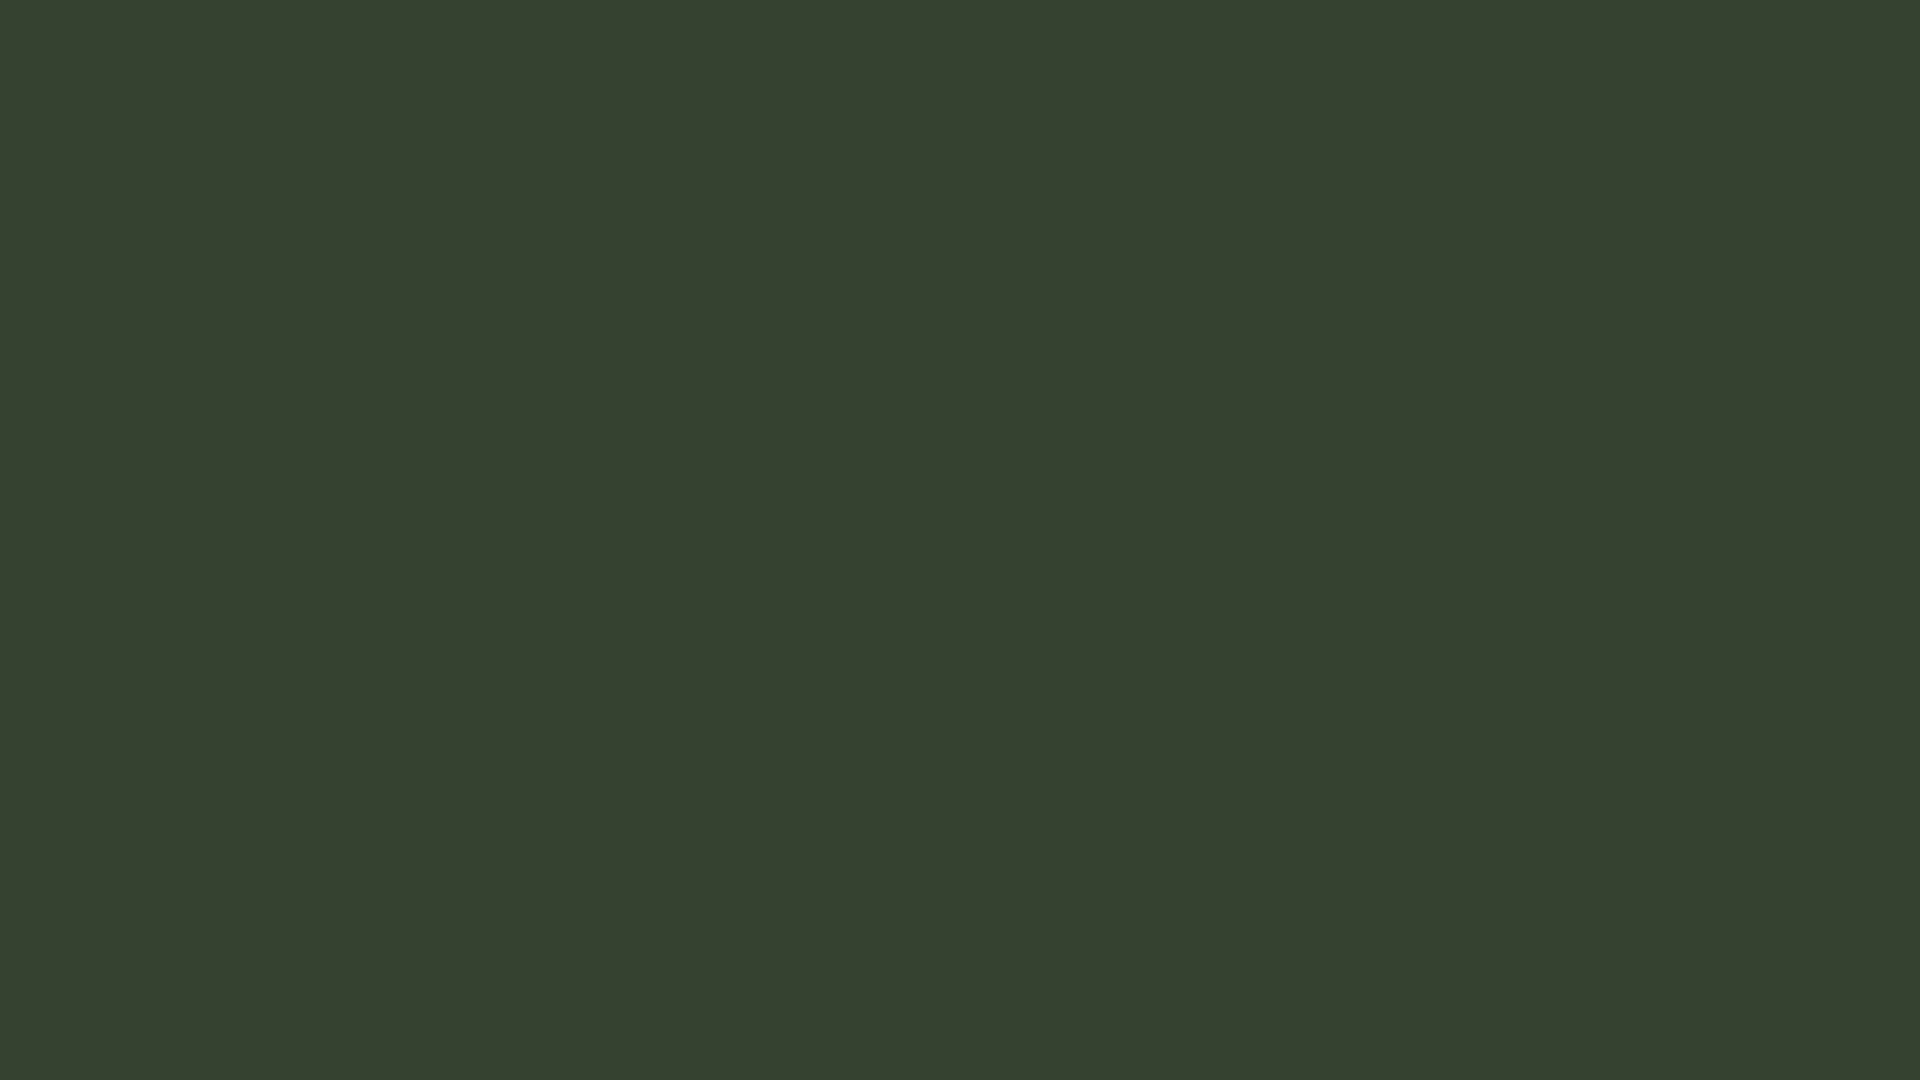 1920x1080 Kombu Green Solid Color Background